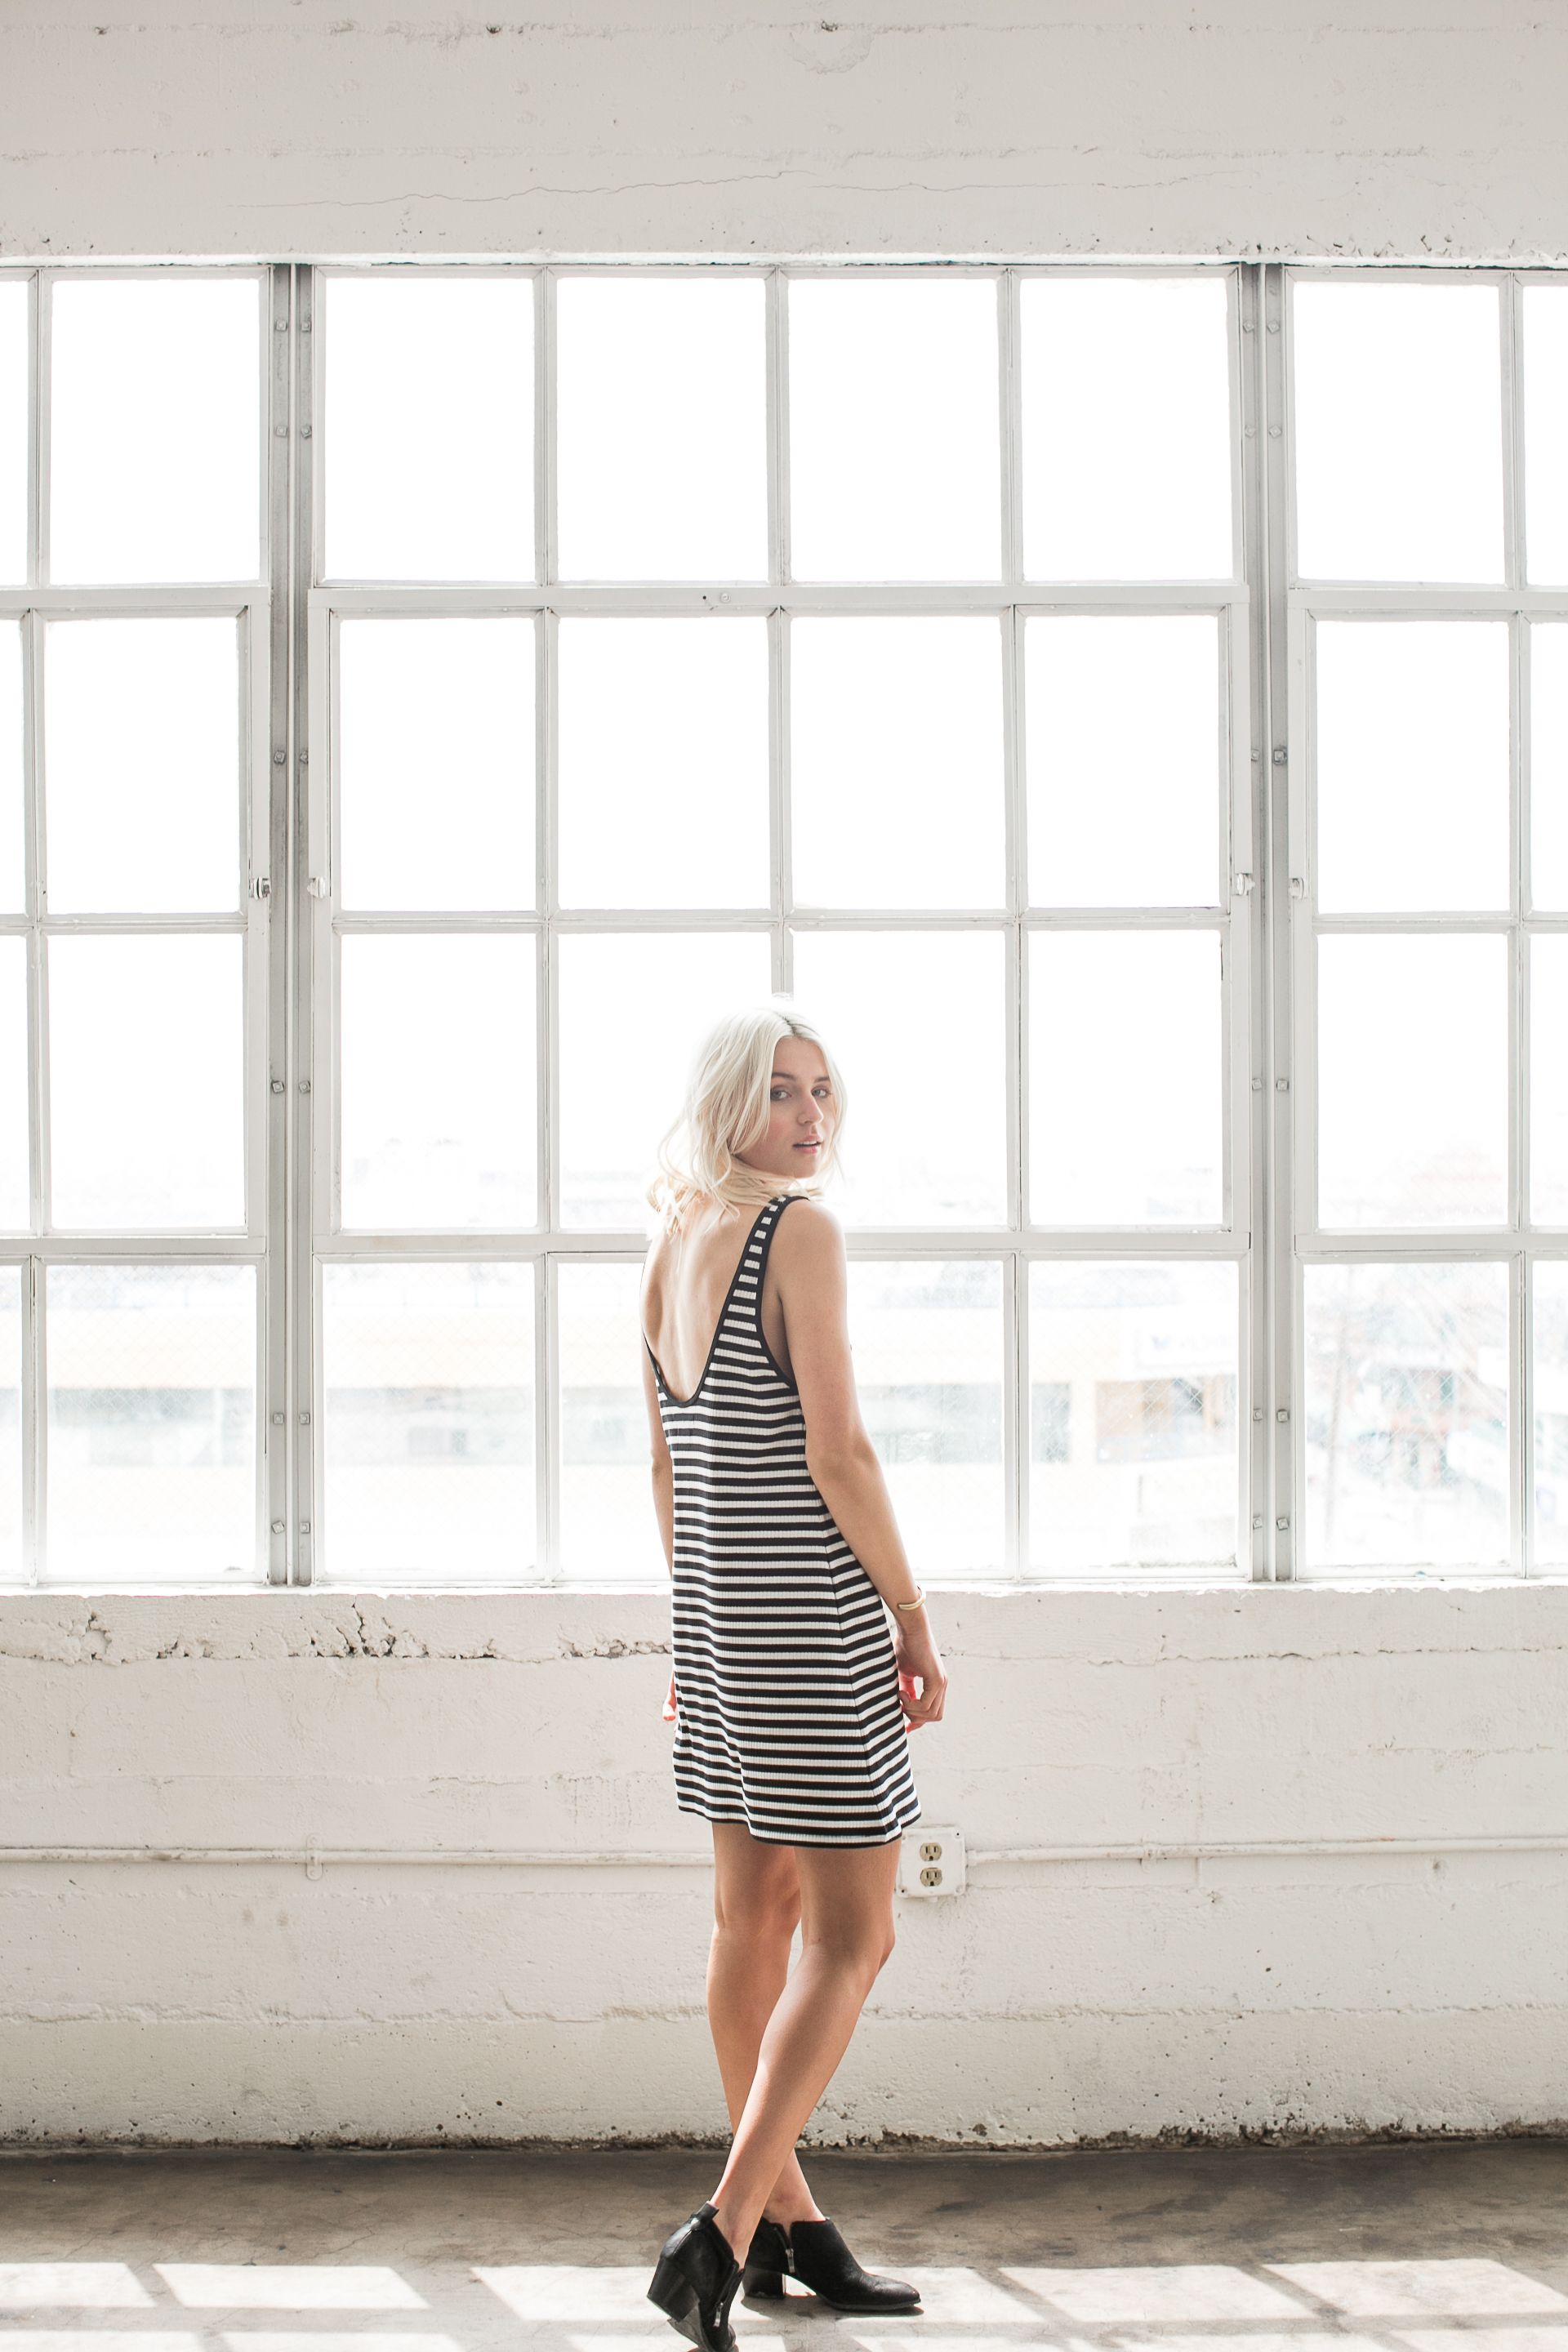 Feel liberated this summer in new dresses + tanks all in individually cut + sewn in Peru.